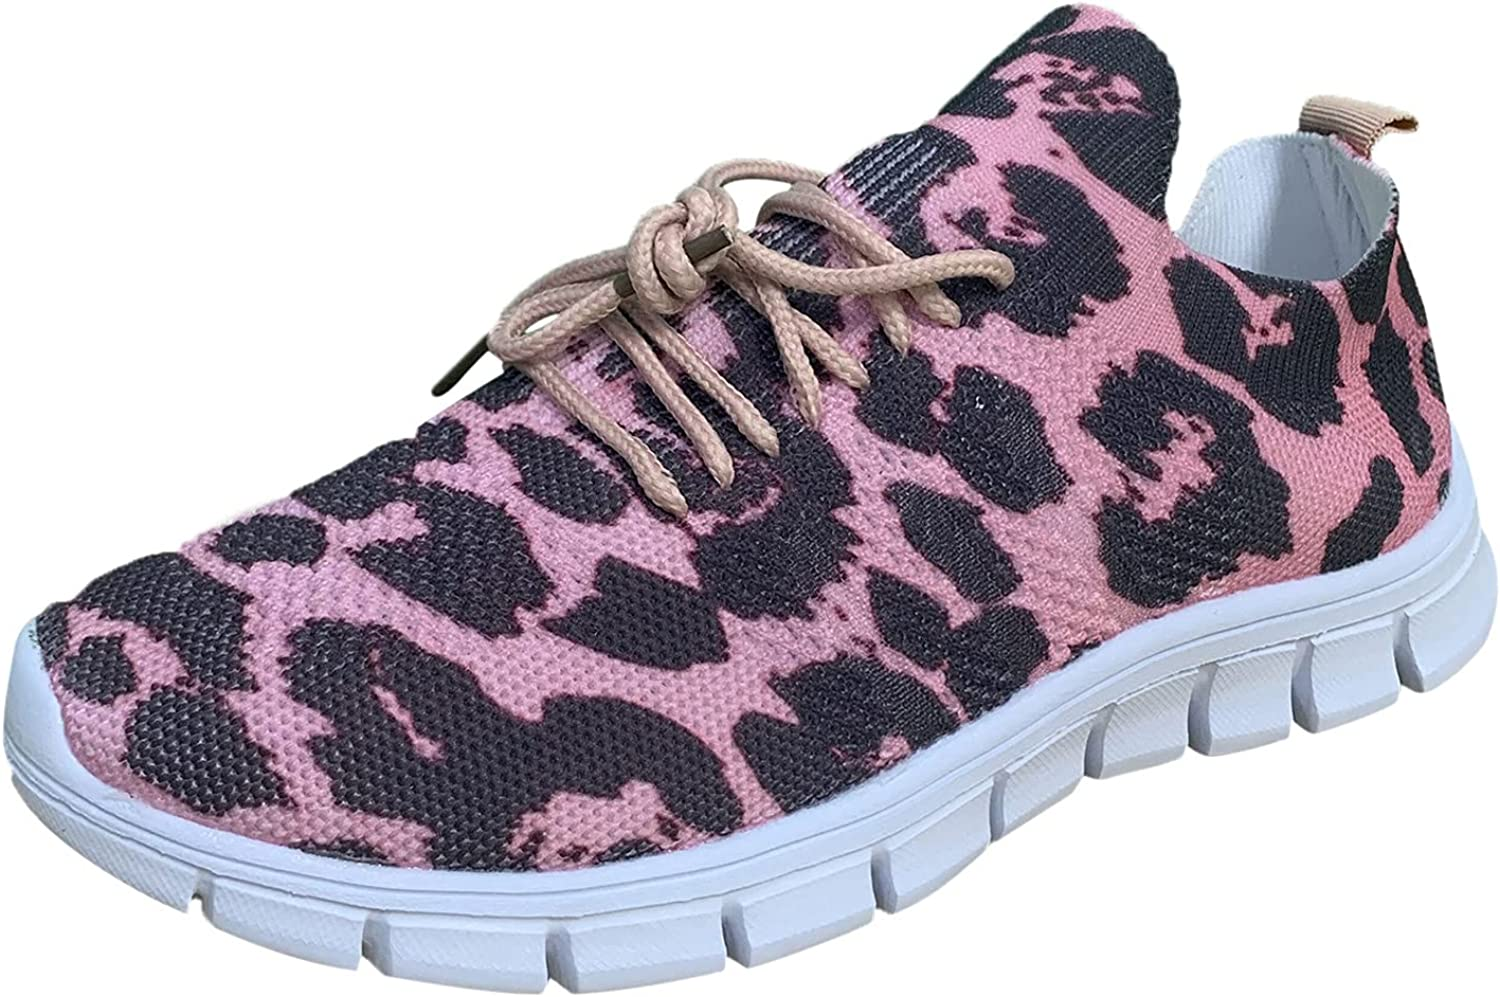 Gyouanime Sneakers Summer Women Casual Breathable S mesh Running Fashionable 25% OFF